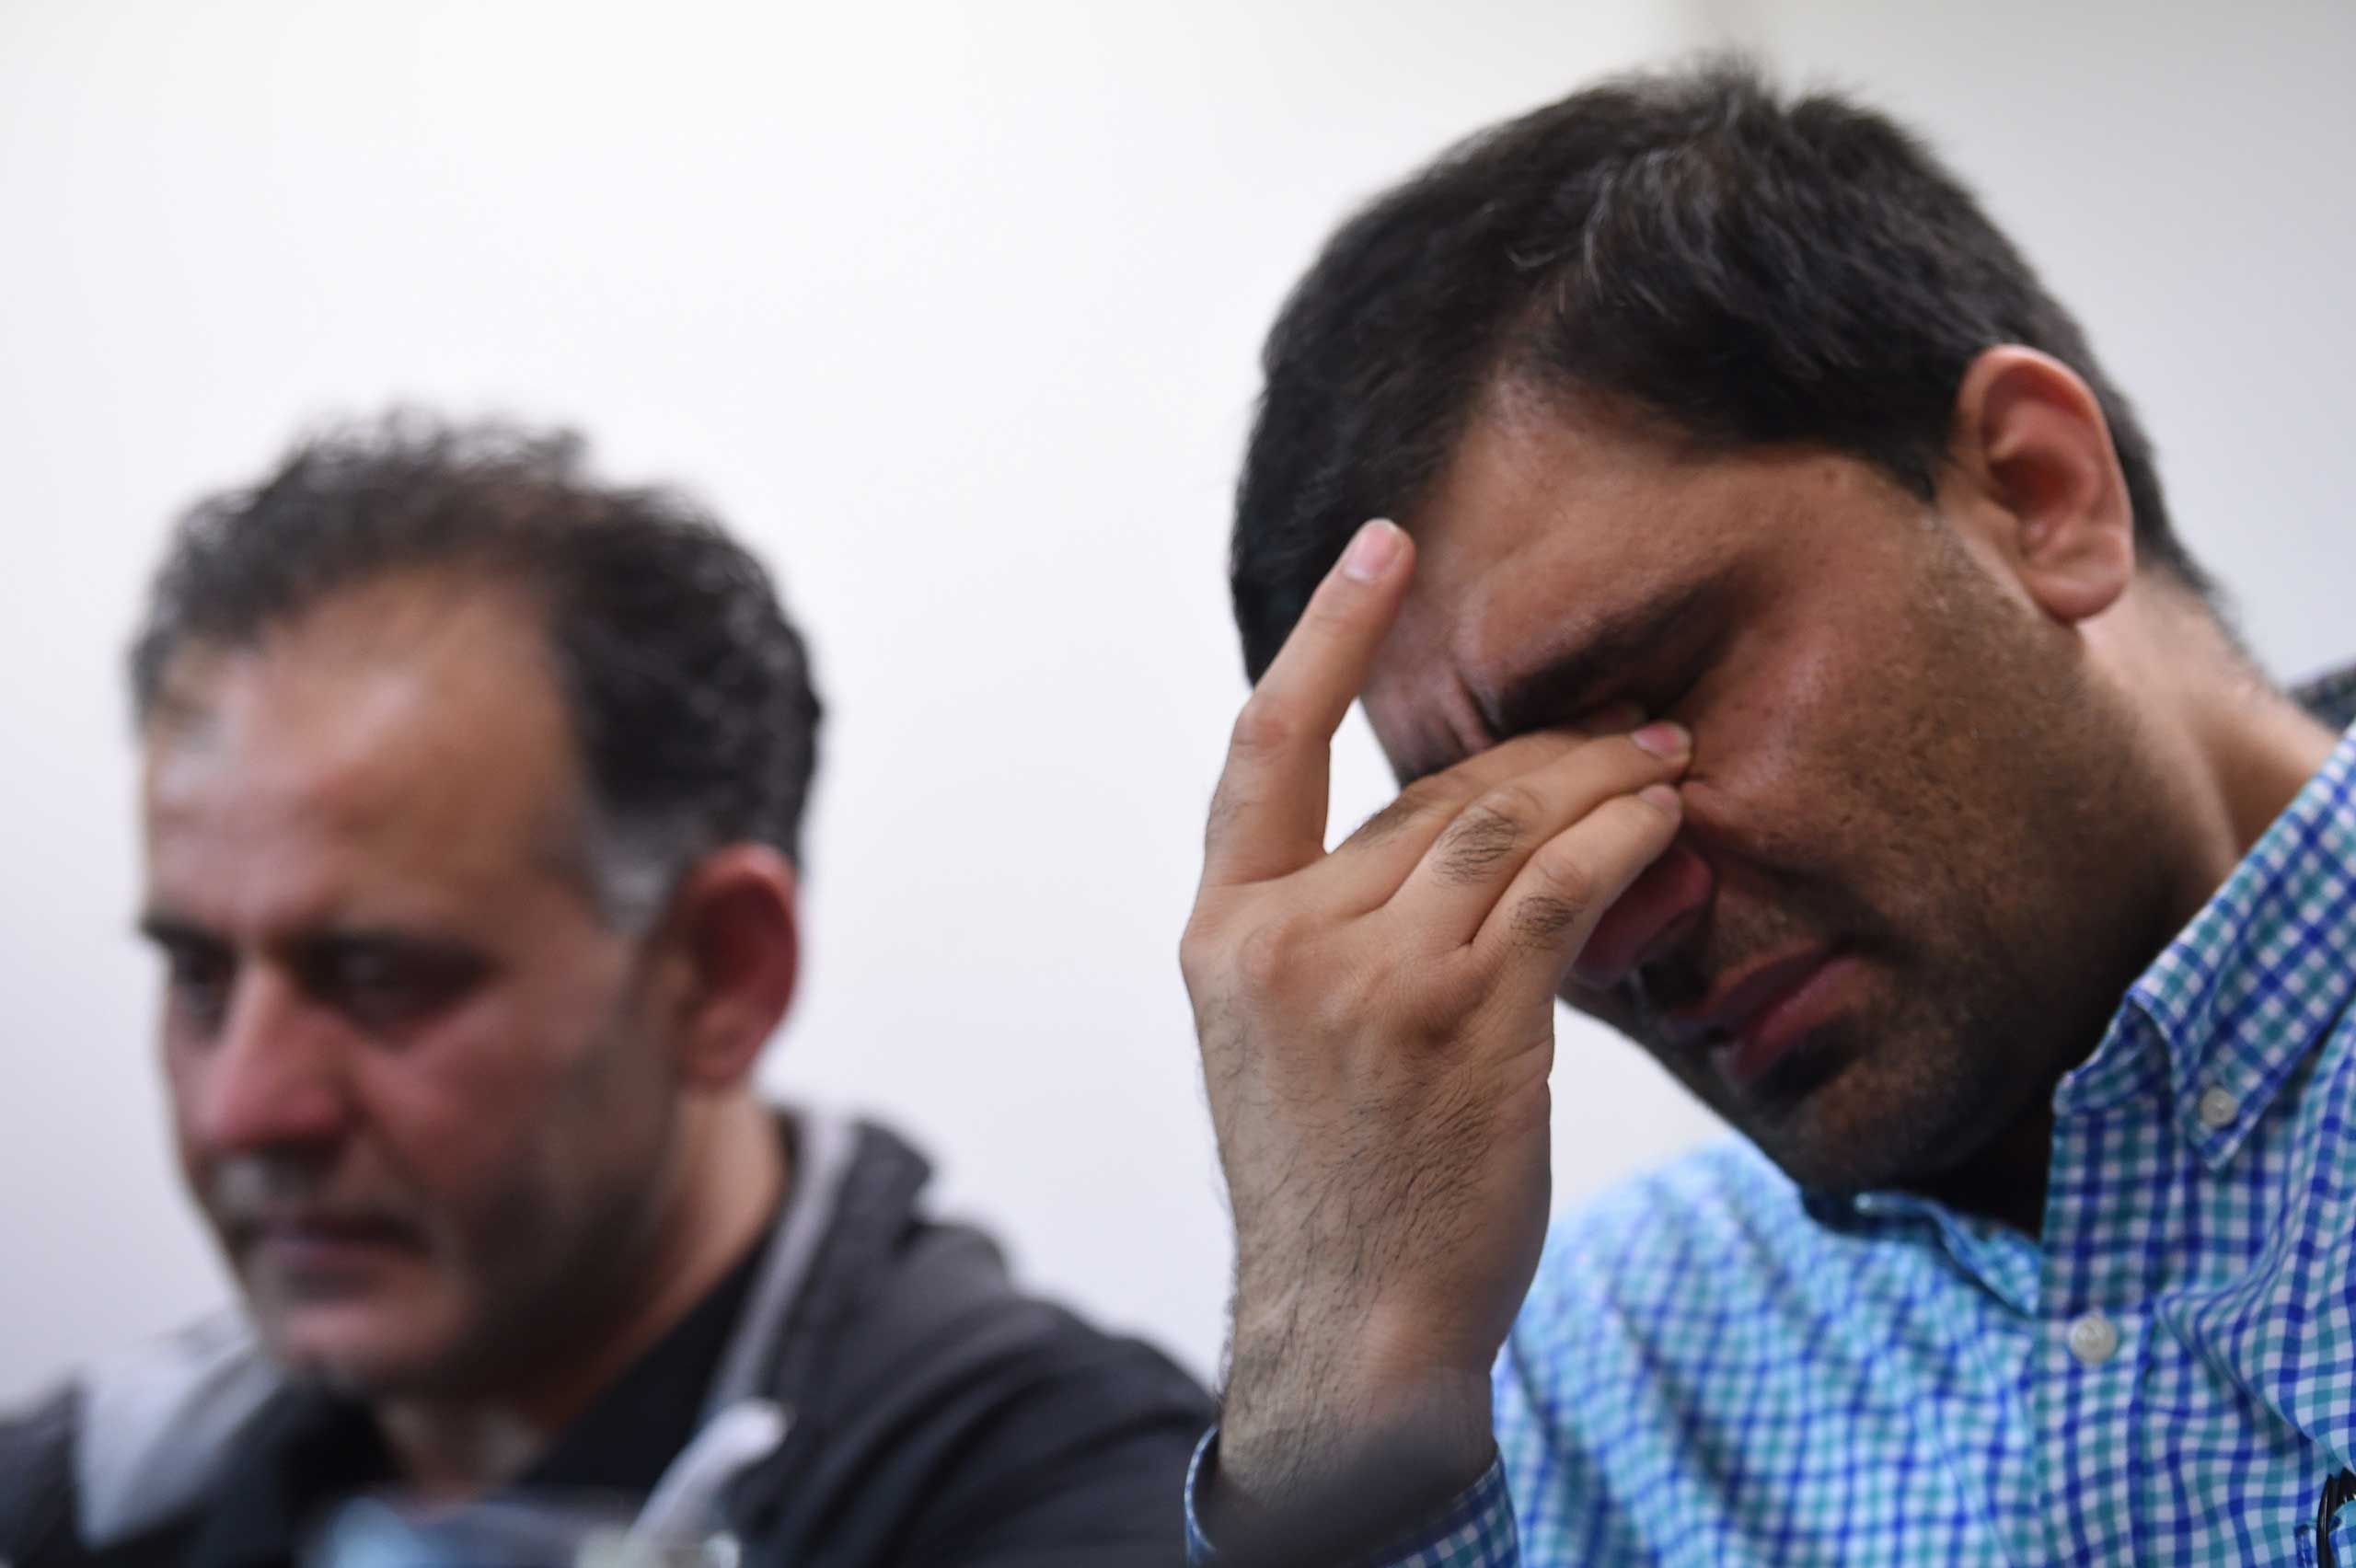 Akhtar Iqbal, husband of Sugra Dawood, left, and Mohammad Shoaib, husband of Khadija Dawood, react during a news conference to appeal for their return, in Bradford, northern England on June 16, 2015.